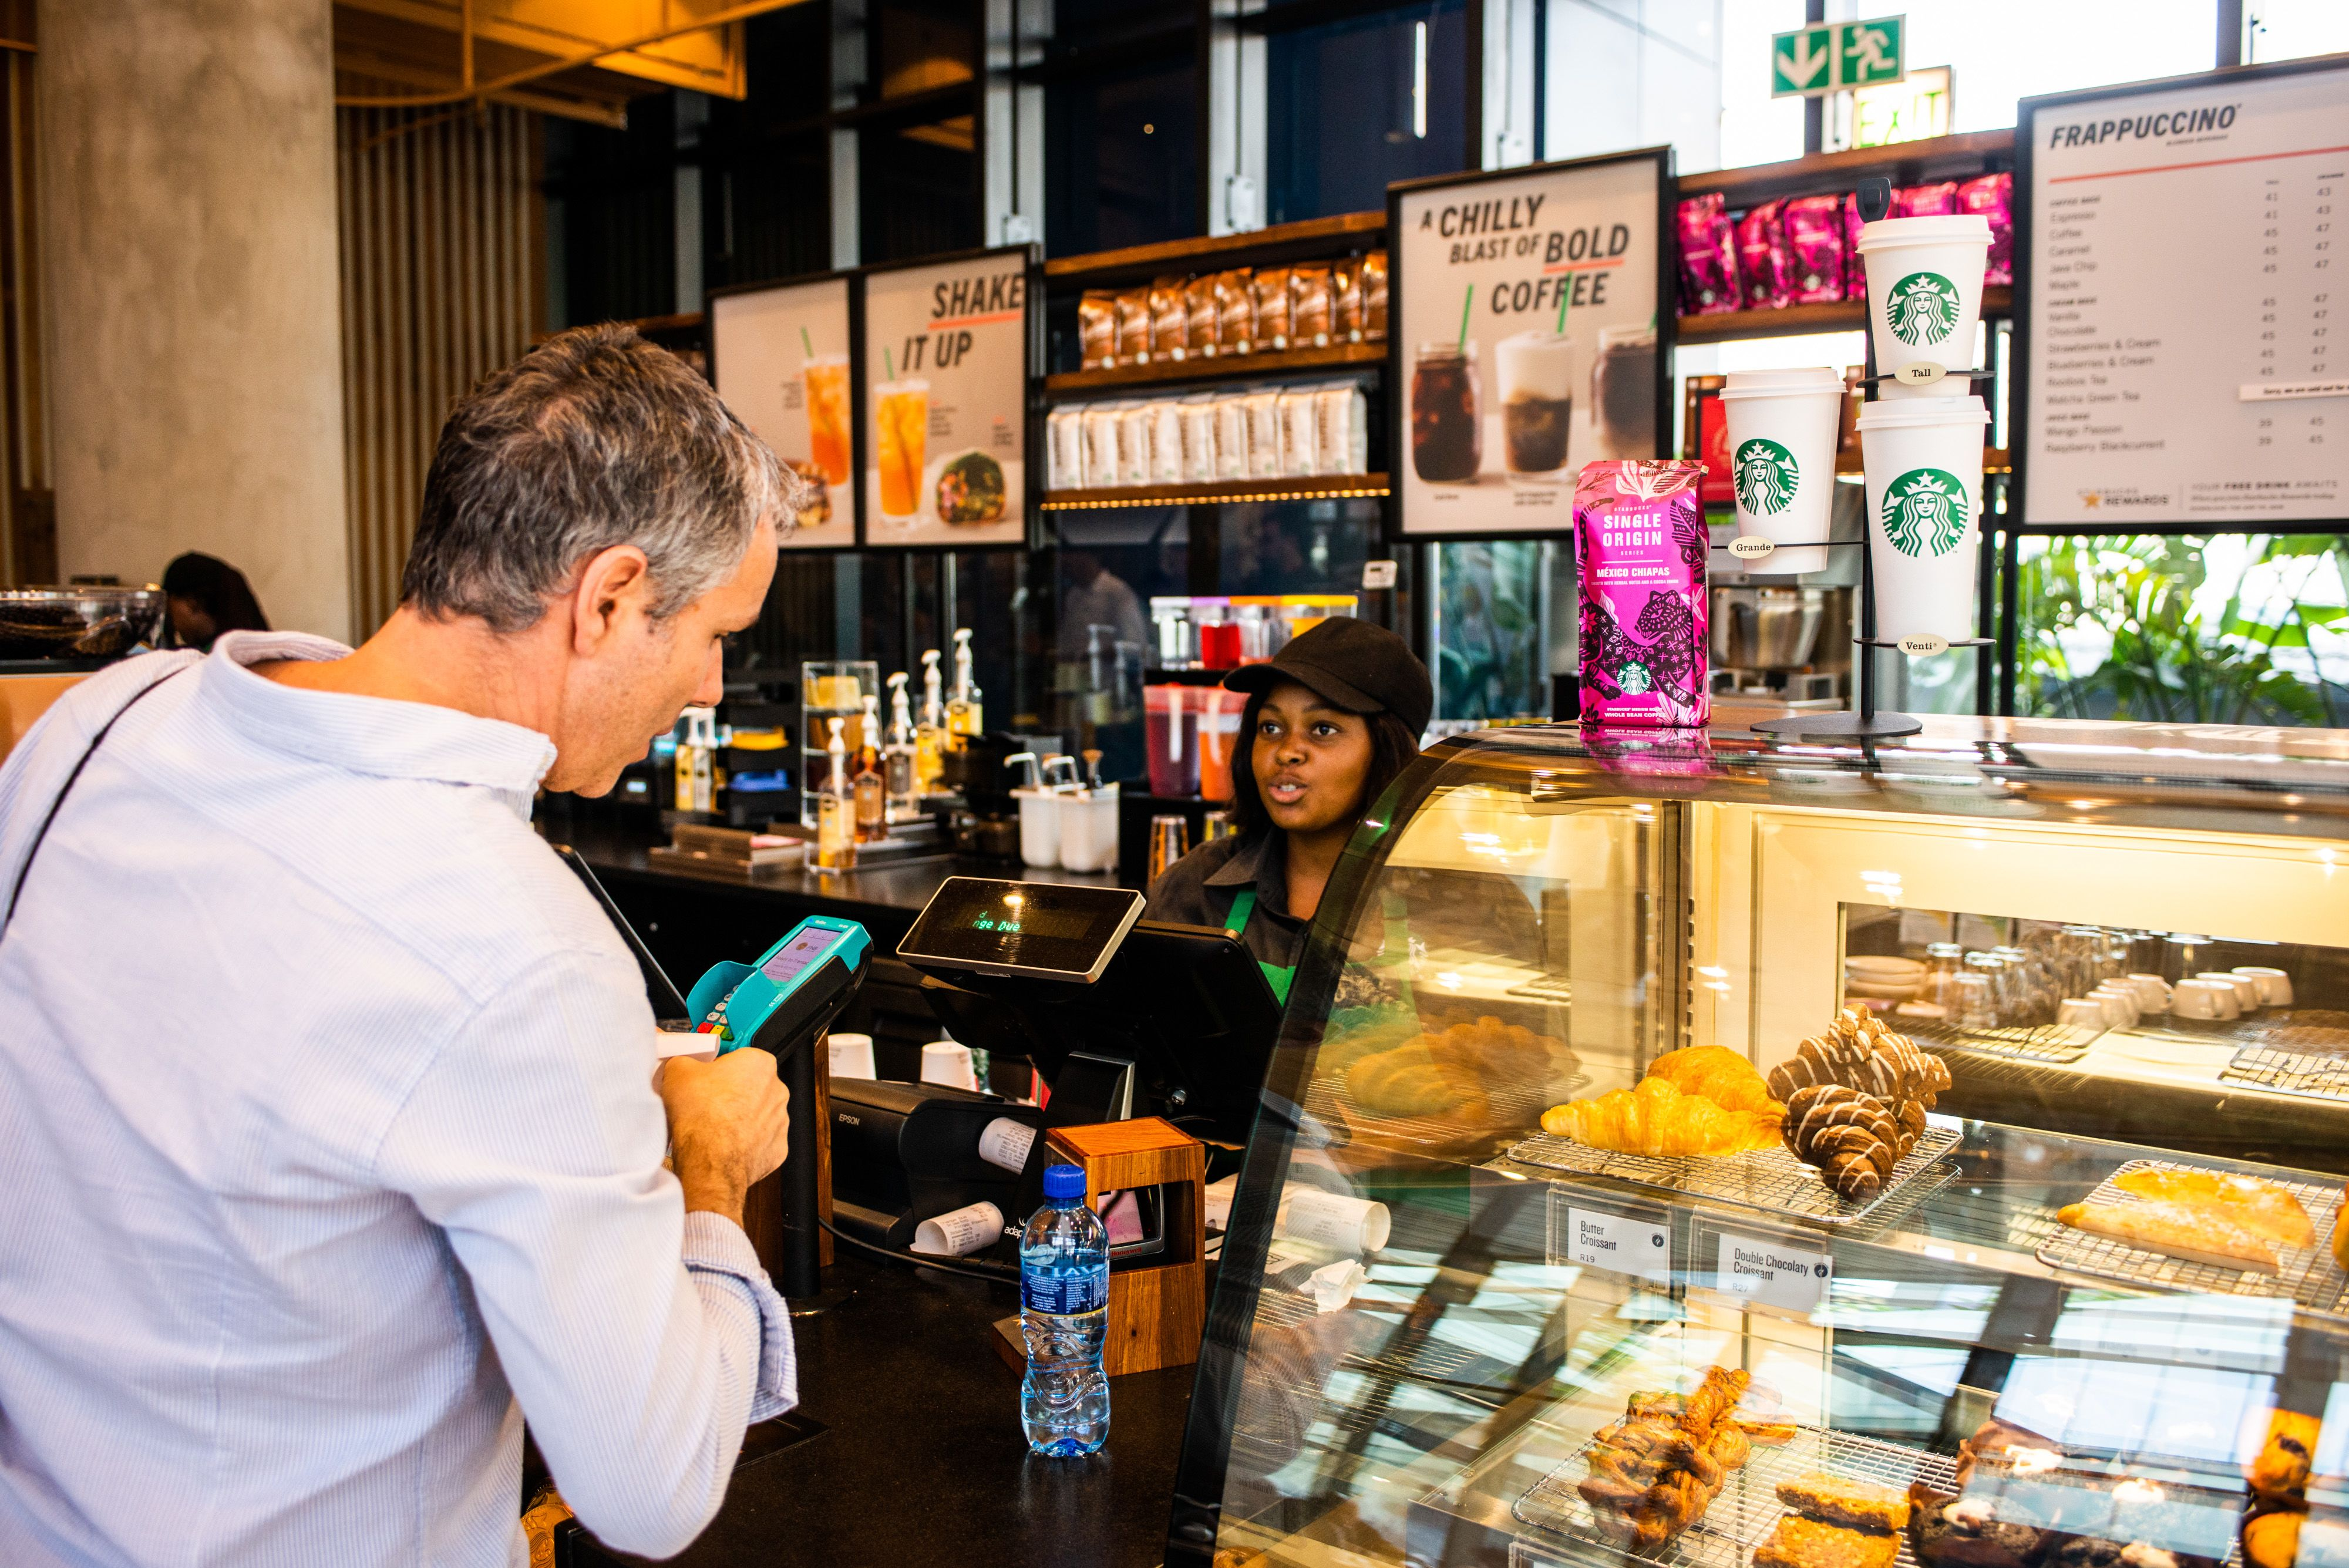 Why Starbucks isn't all that popular in South Africa